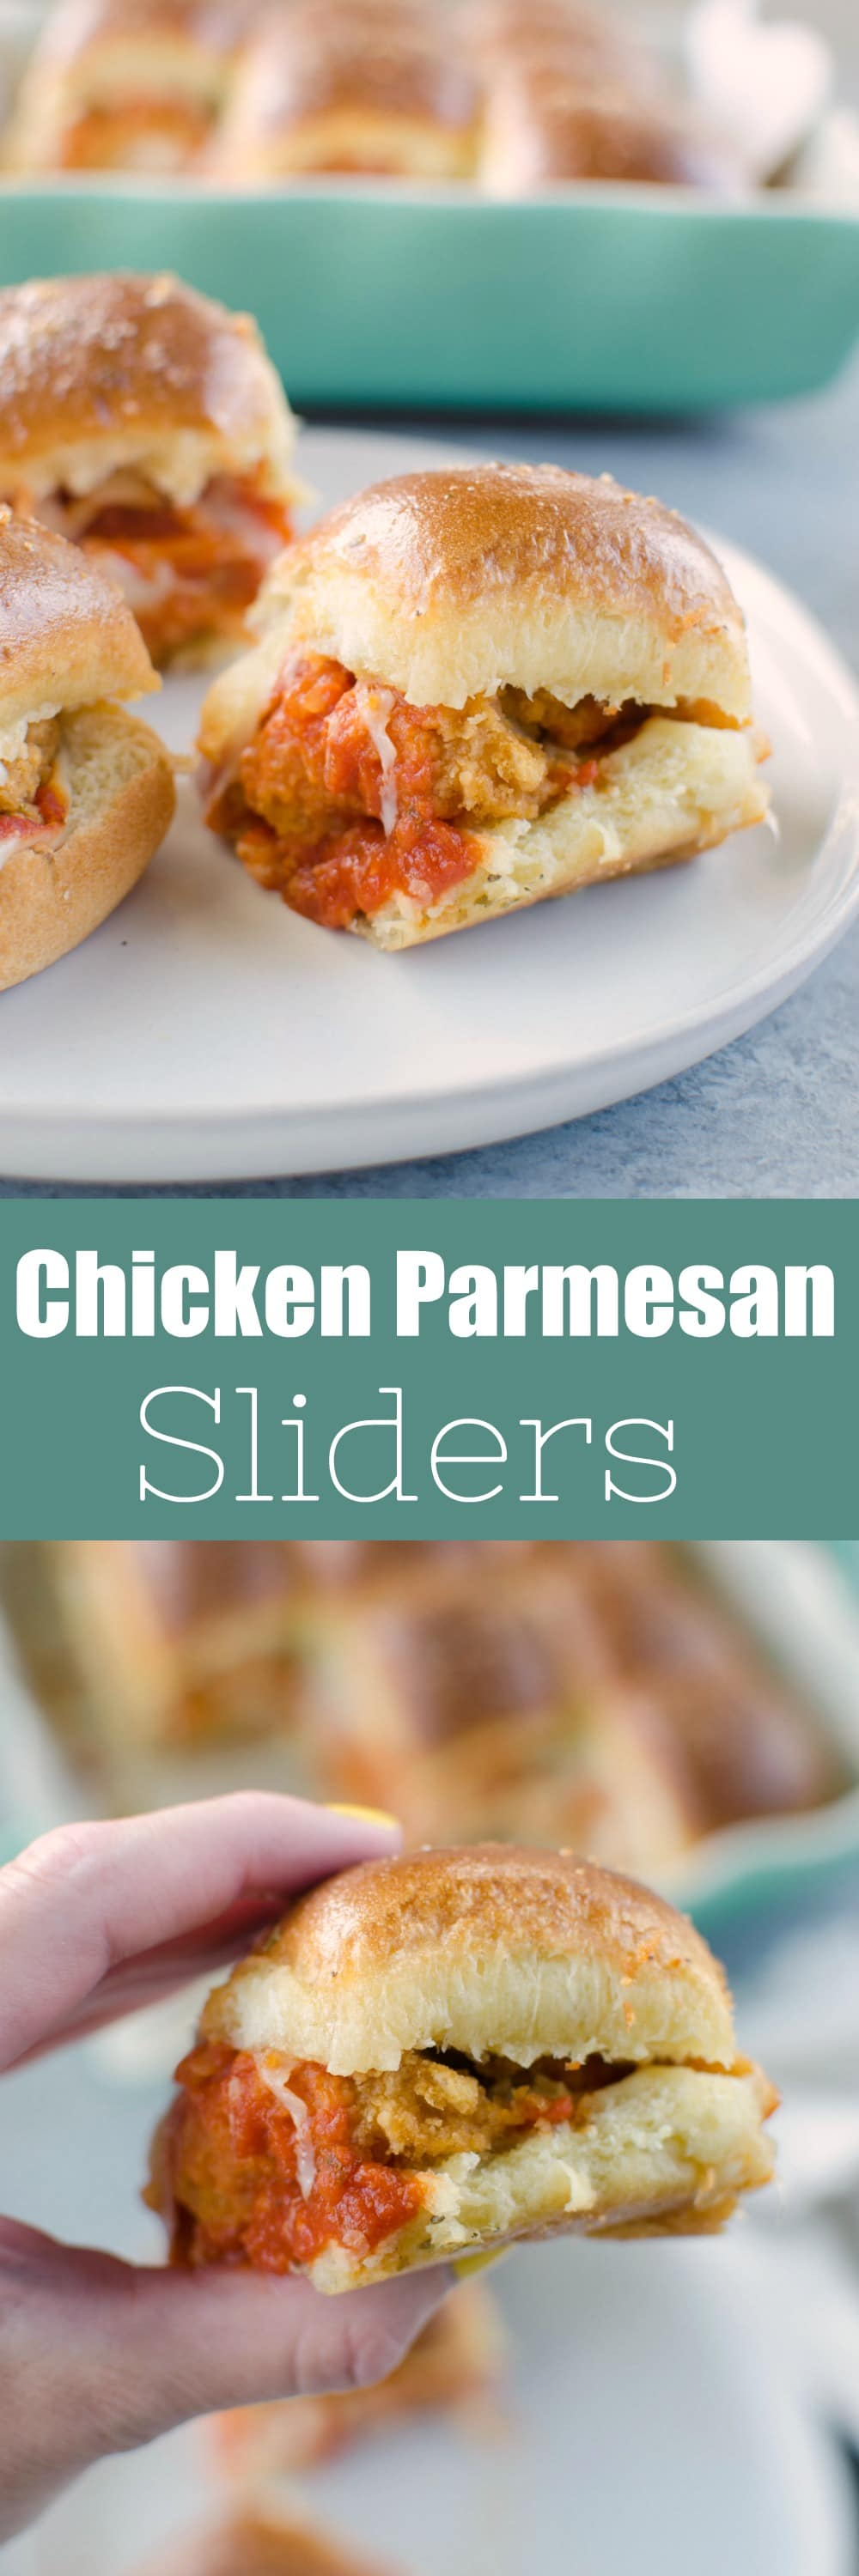 Chicken Parmesan Sliders - hawaiian rolls layered with crispy chicken strips, marinara, 2 kinds of cheeses, and topped with a garlicky butter glaze! Easy weeknight dinner or perfect for a party.